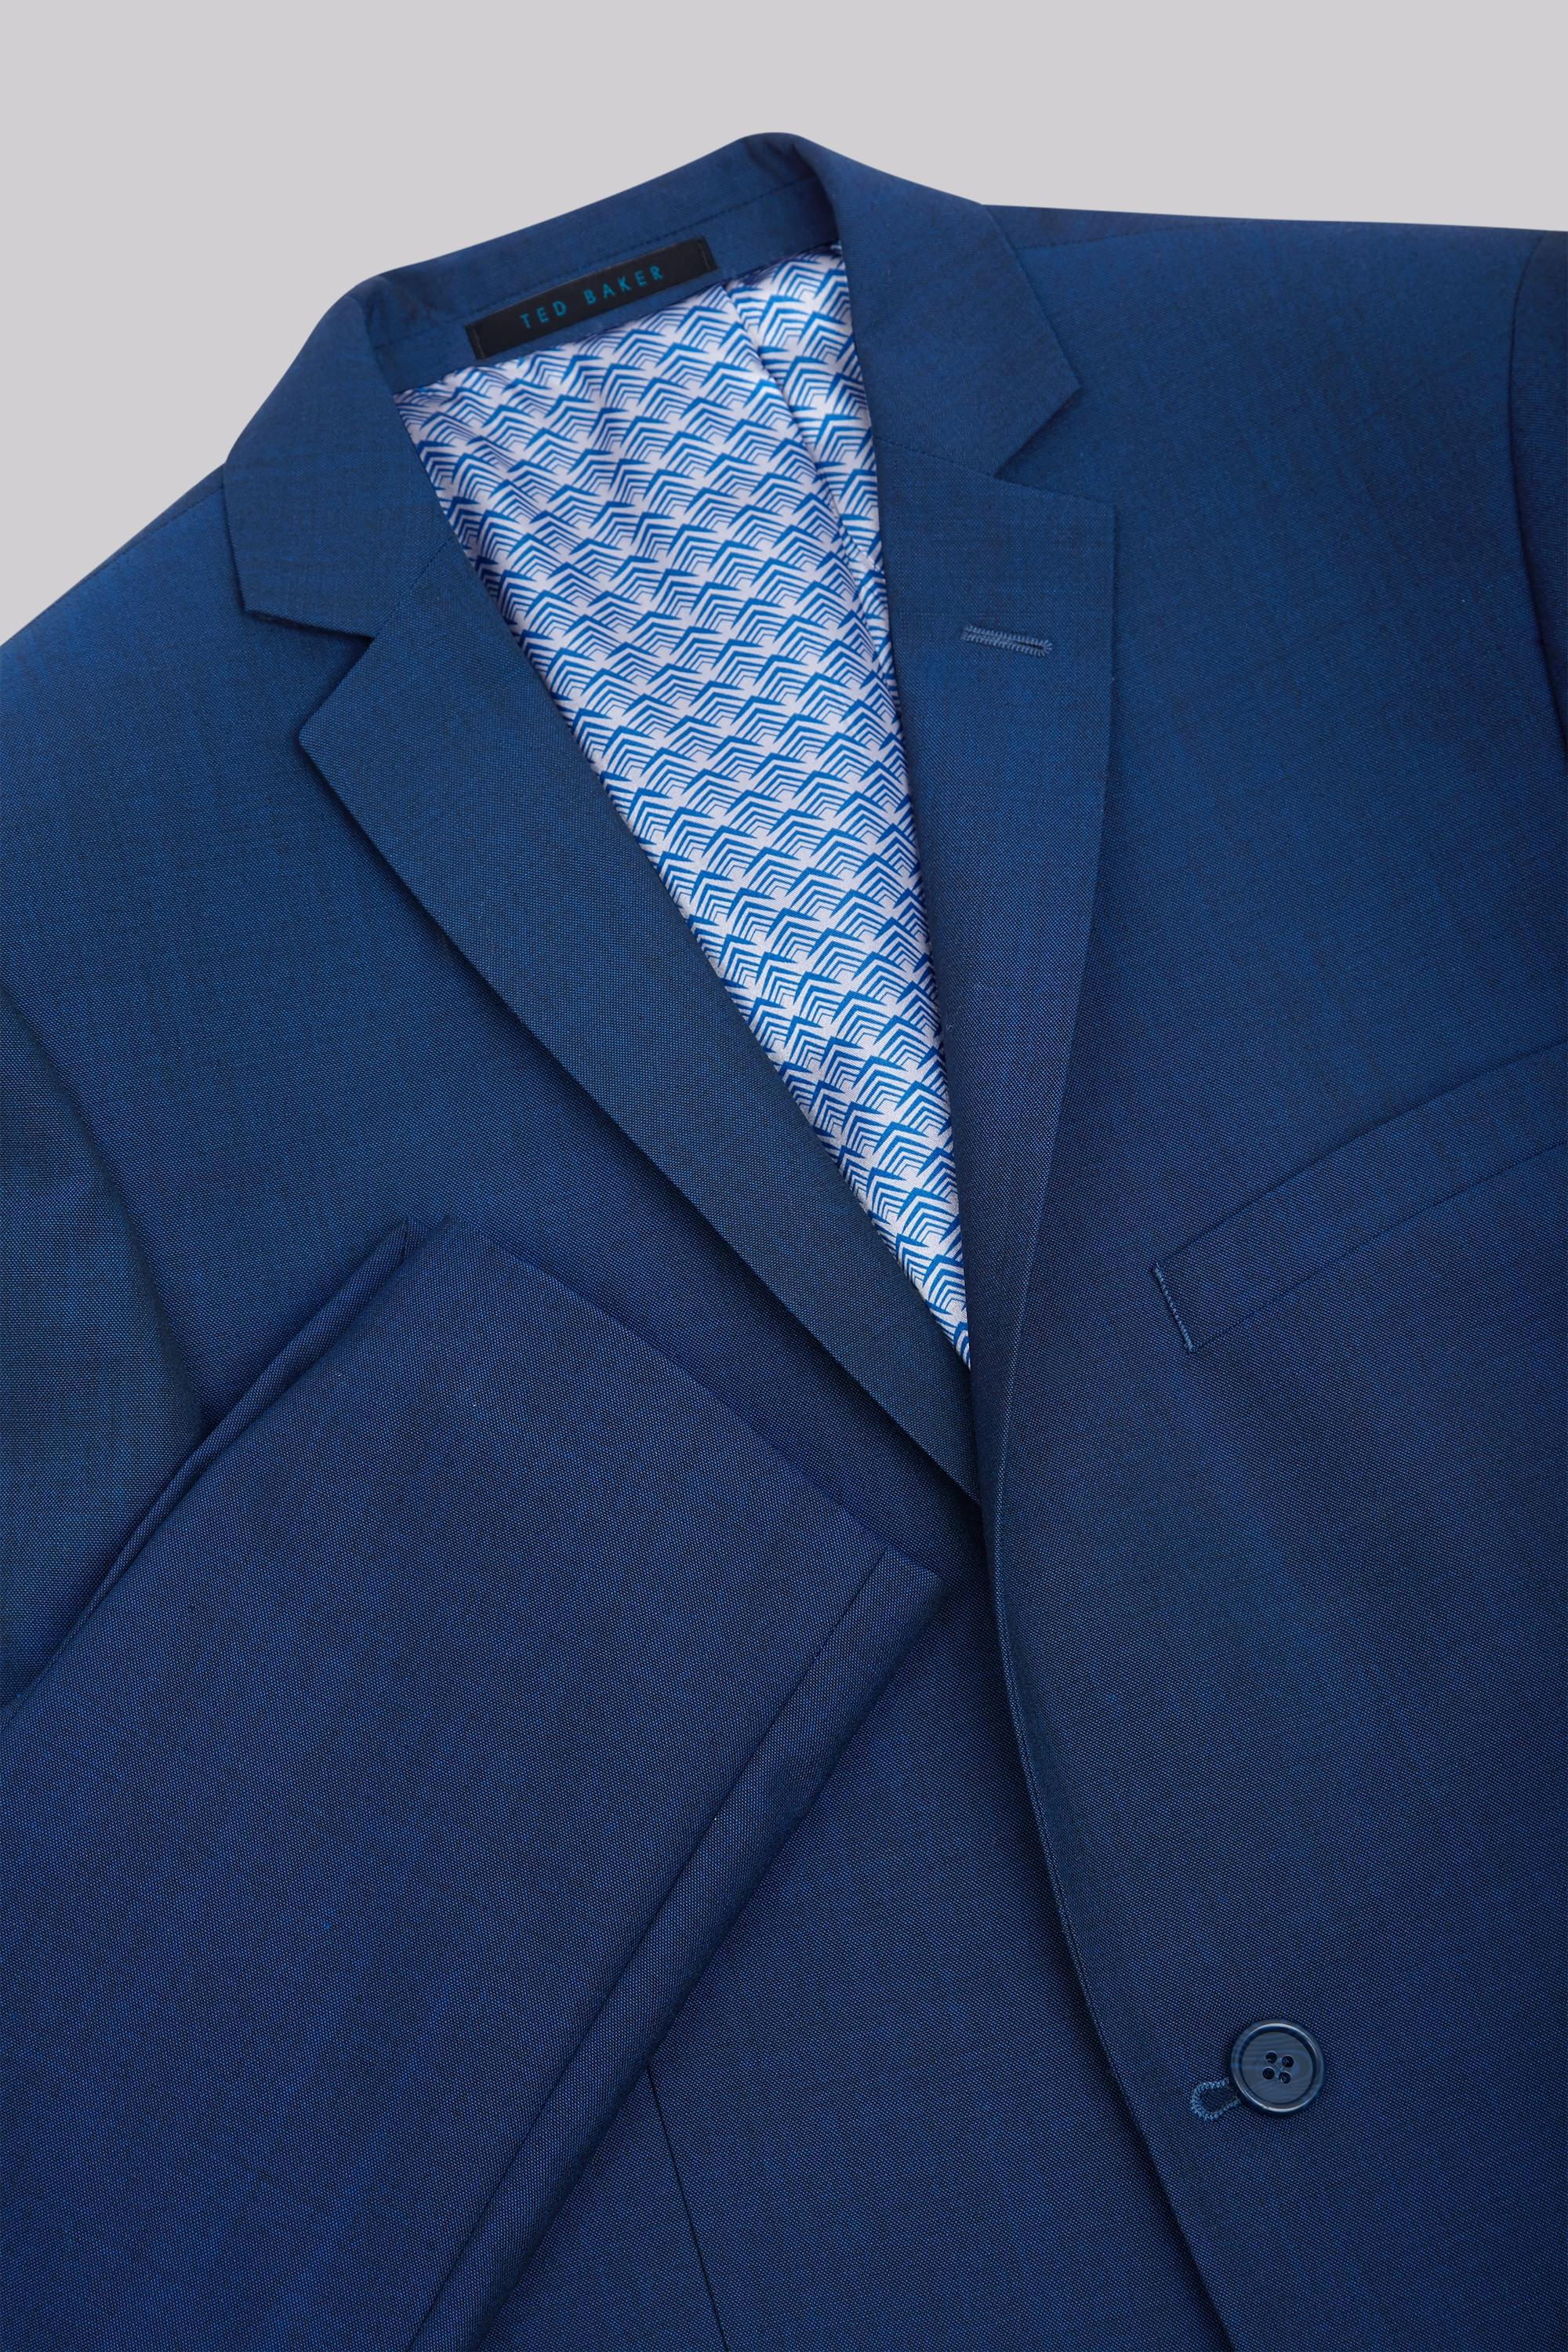 Ted Baker Tailored Fit Teal Mohair Look Jacket in Blue for Men